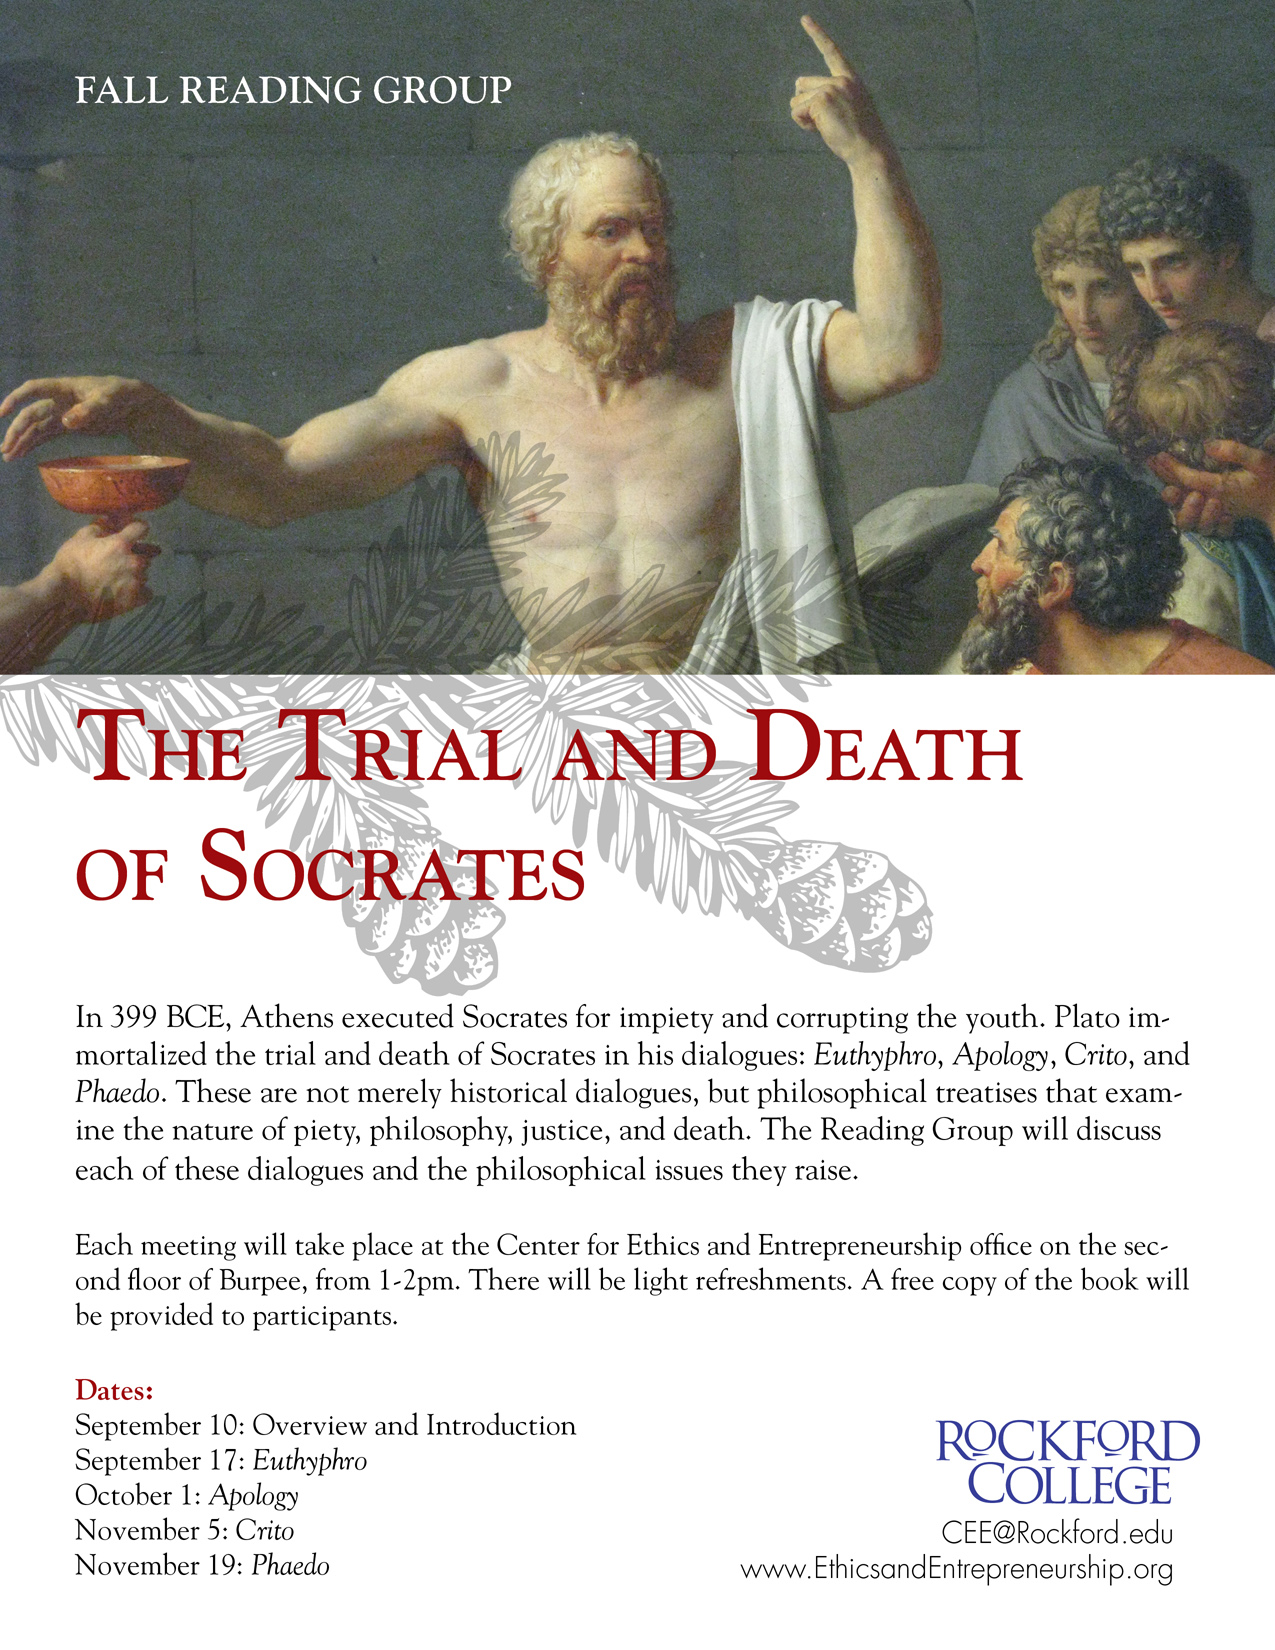 philosophy essays socrates Essay philosophy in ancient greece was merely a type of argument, until a pioneer named socrates showed the world a new way of thinking socrates was born in 469 bc in athens (where he lived all his life) as the son of sophroniscus, a stonemason, and phaenarete in his life, socrates changed common philosophy, which was a study.